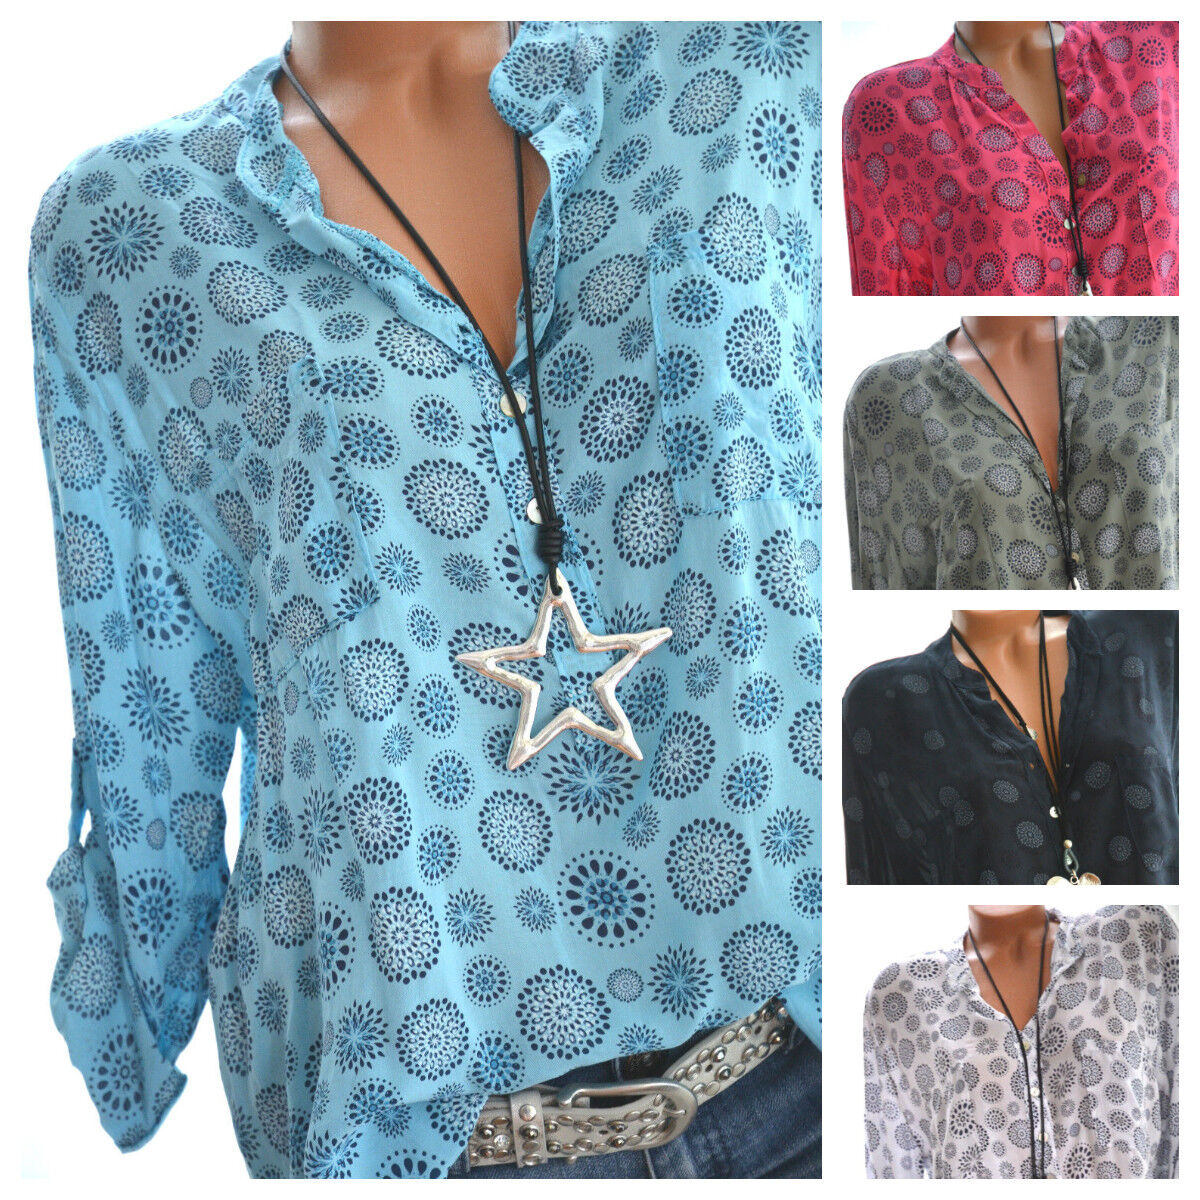 Made in Italy  Langarm Bluse Damen Tunika Top Hemd Shirt Mandala Fischerhemd